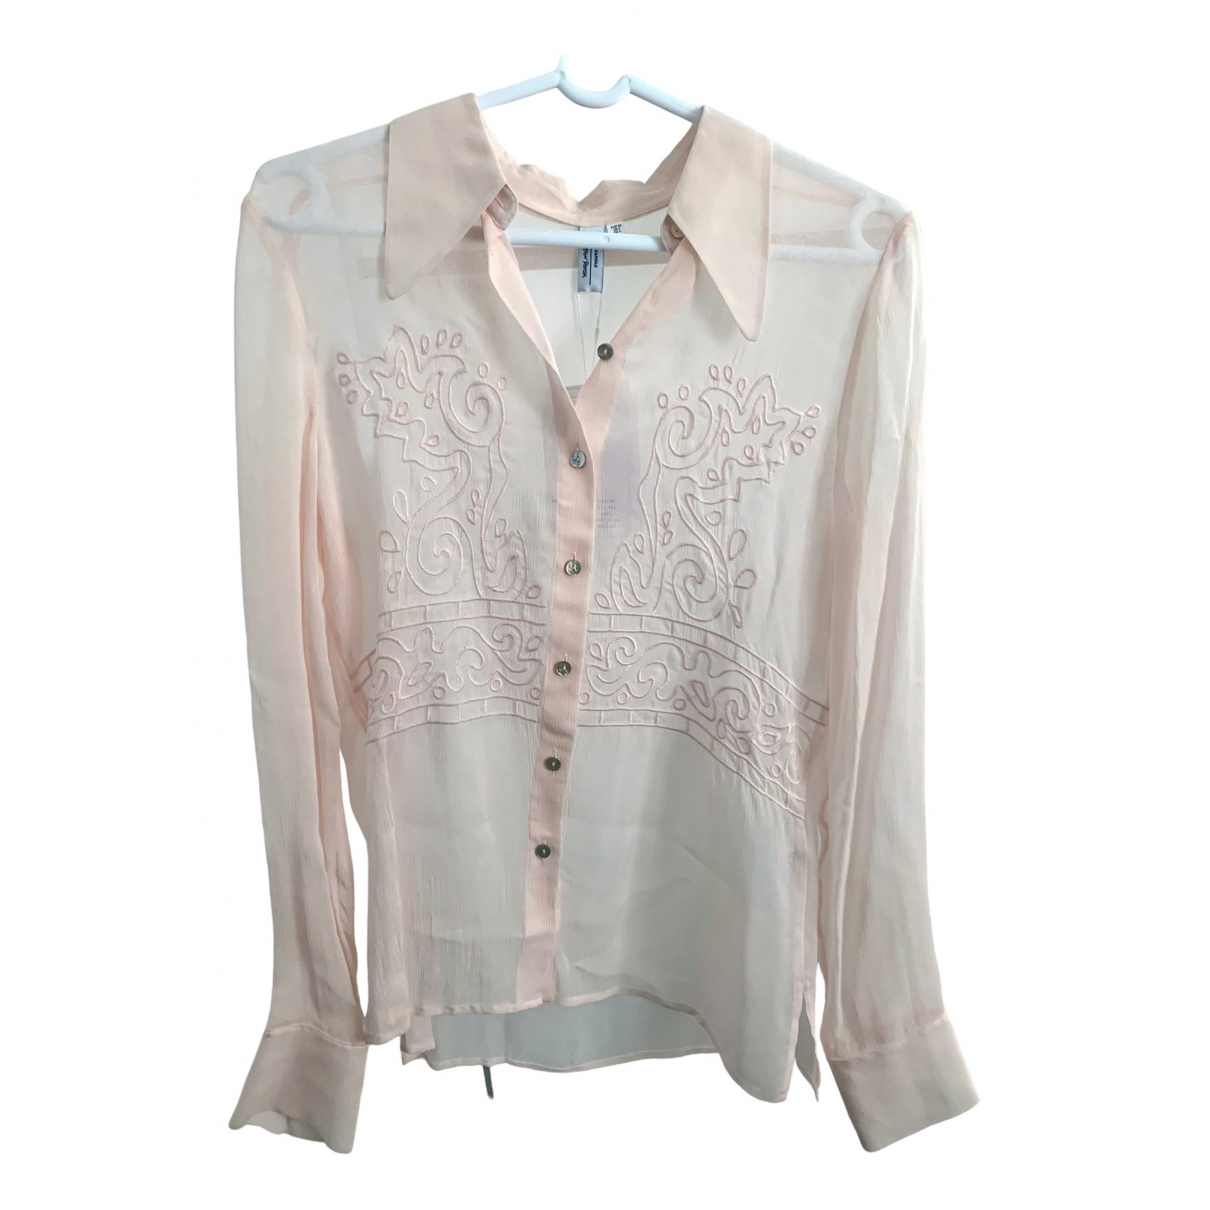 & Stories \N Pink  top for Women 36 FR